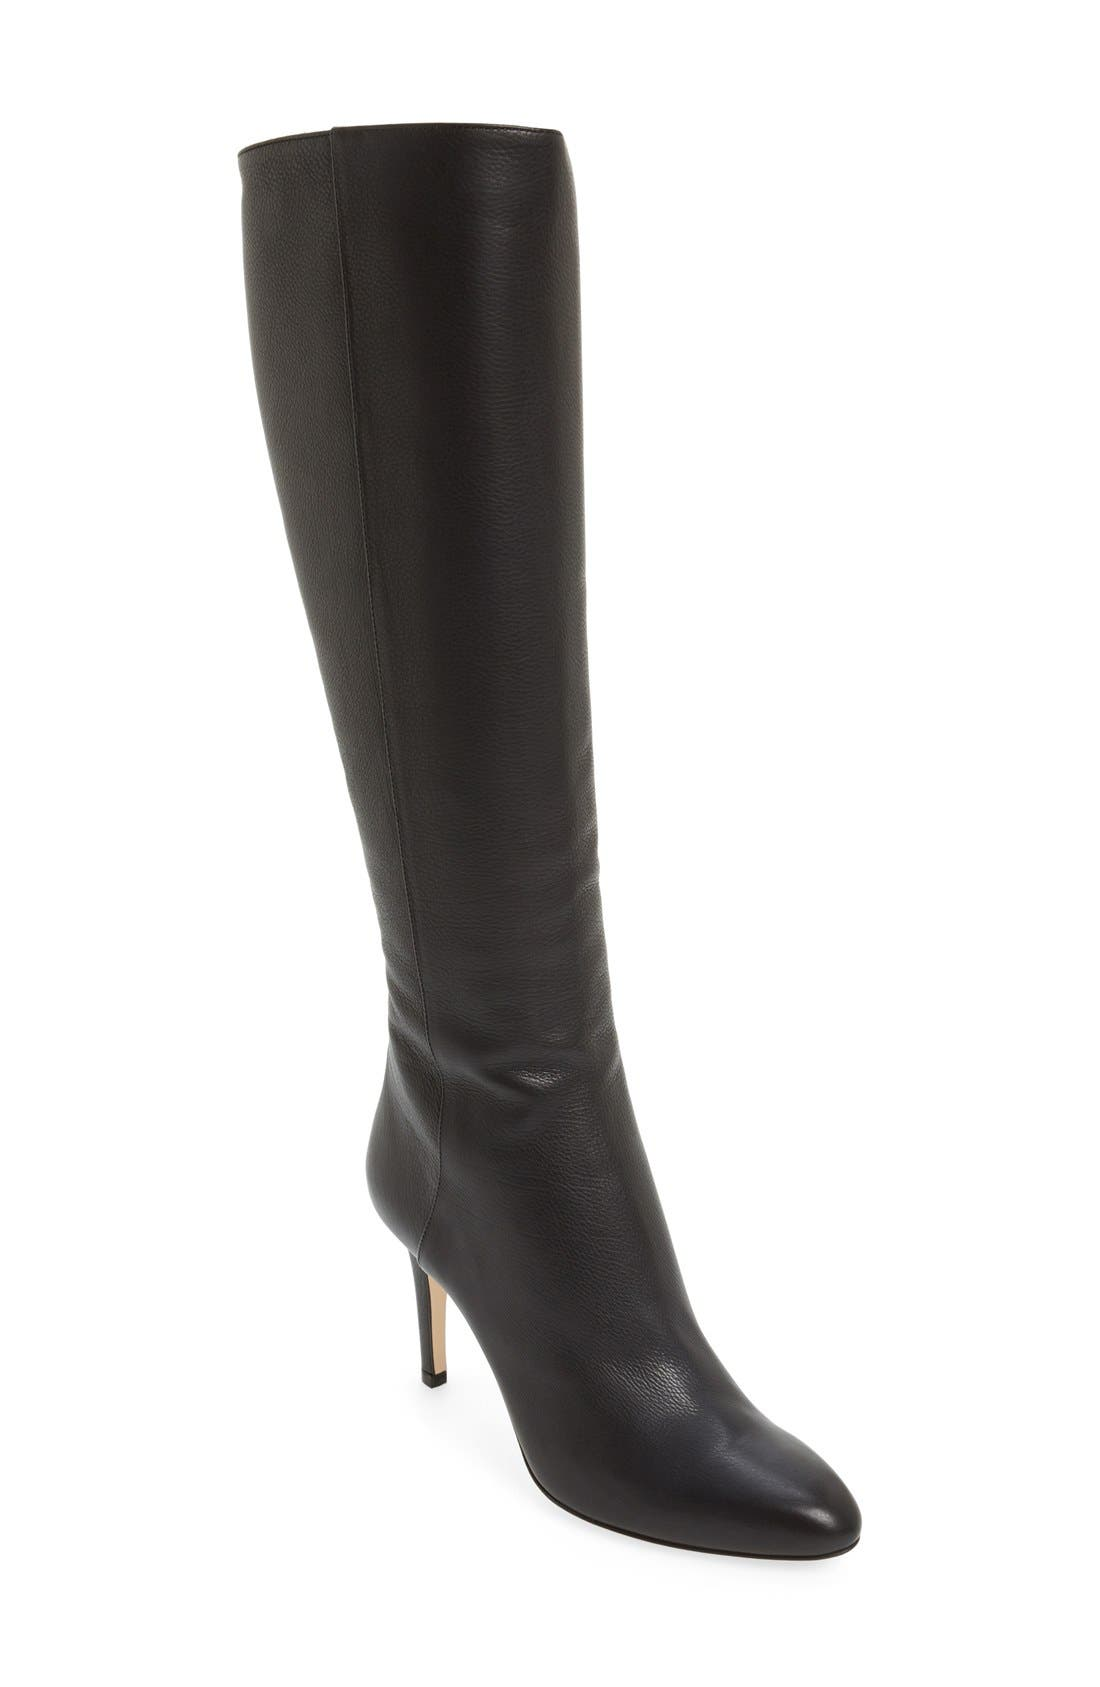 Alternate Image 1 Selected - Jimmy Choo 'Grand' Tall Boot